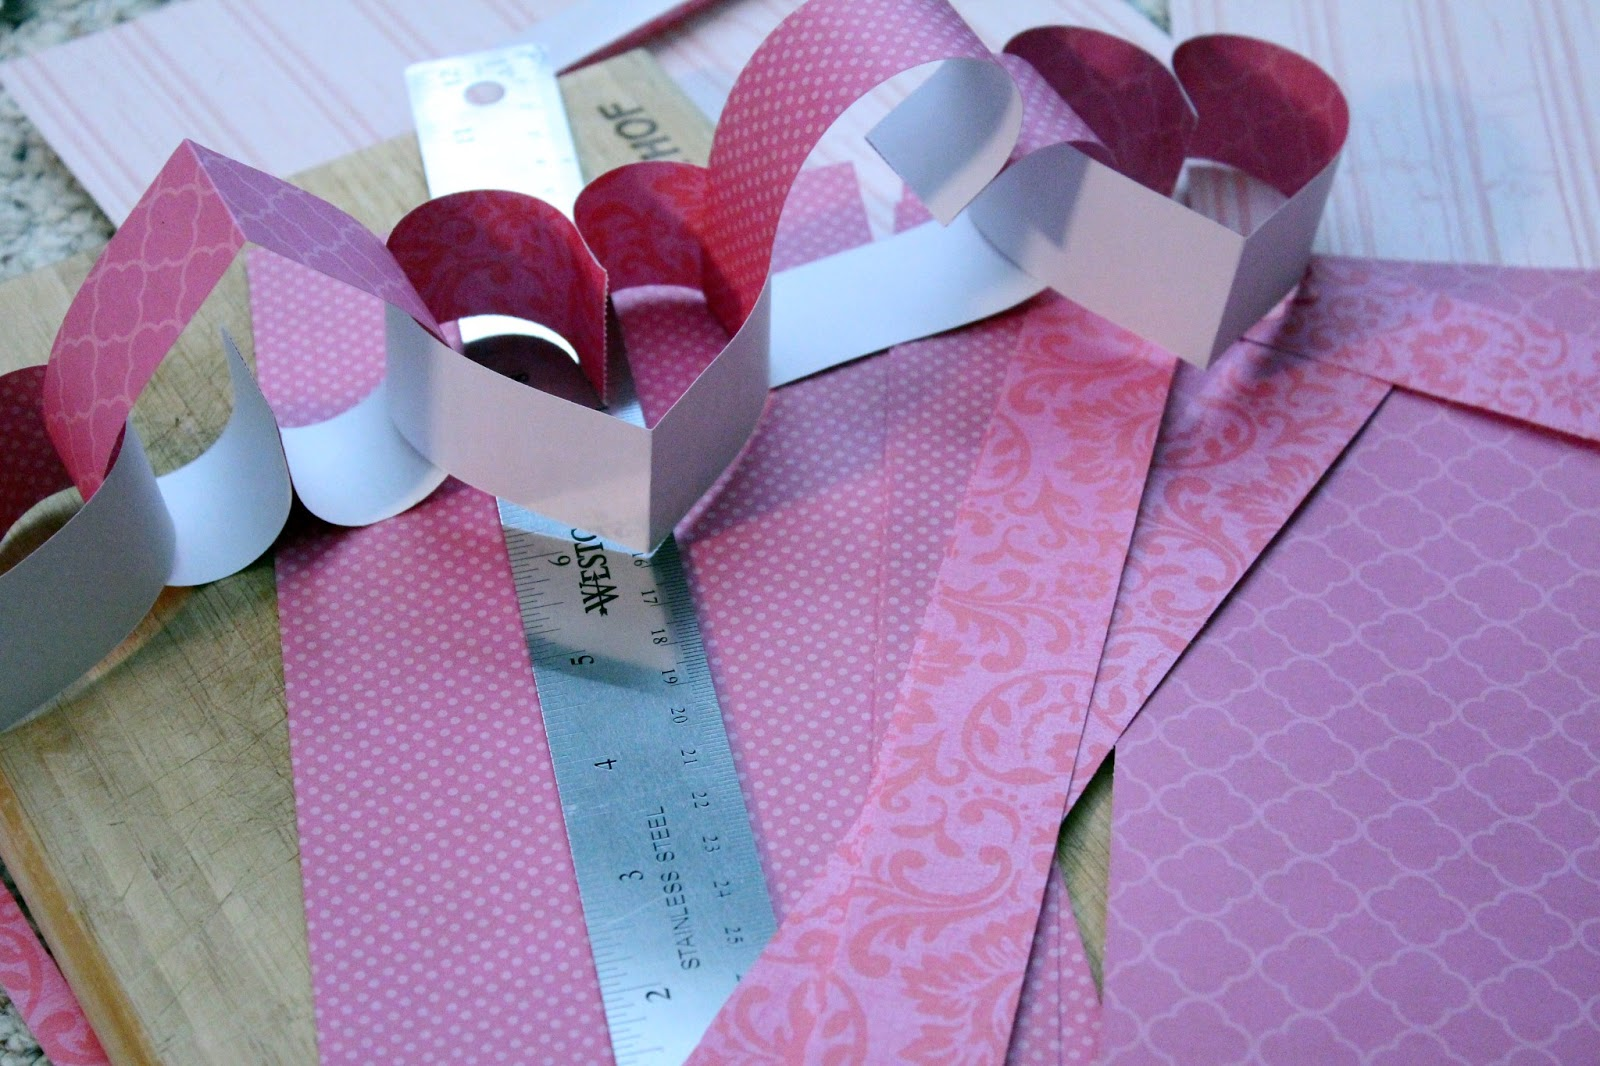 http://3.bp.blogspot.com/-r7oD9WvI3I4/UQbWra6zJpI/AAAAAAAAR08/TbRr6-hB8Go/s1600/how+to+make+heart+paper+chain.jpg